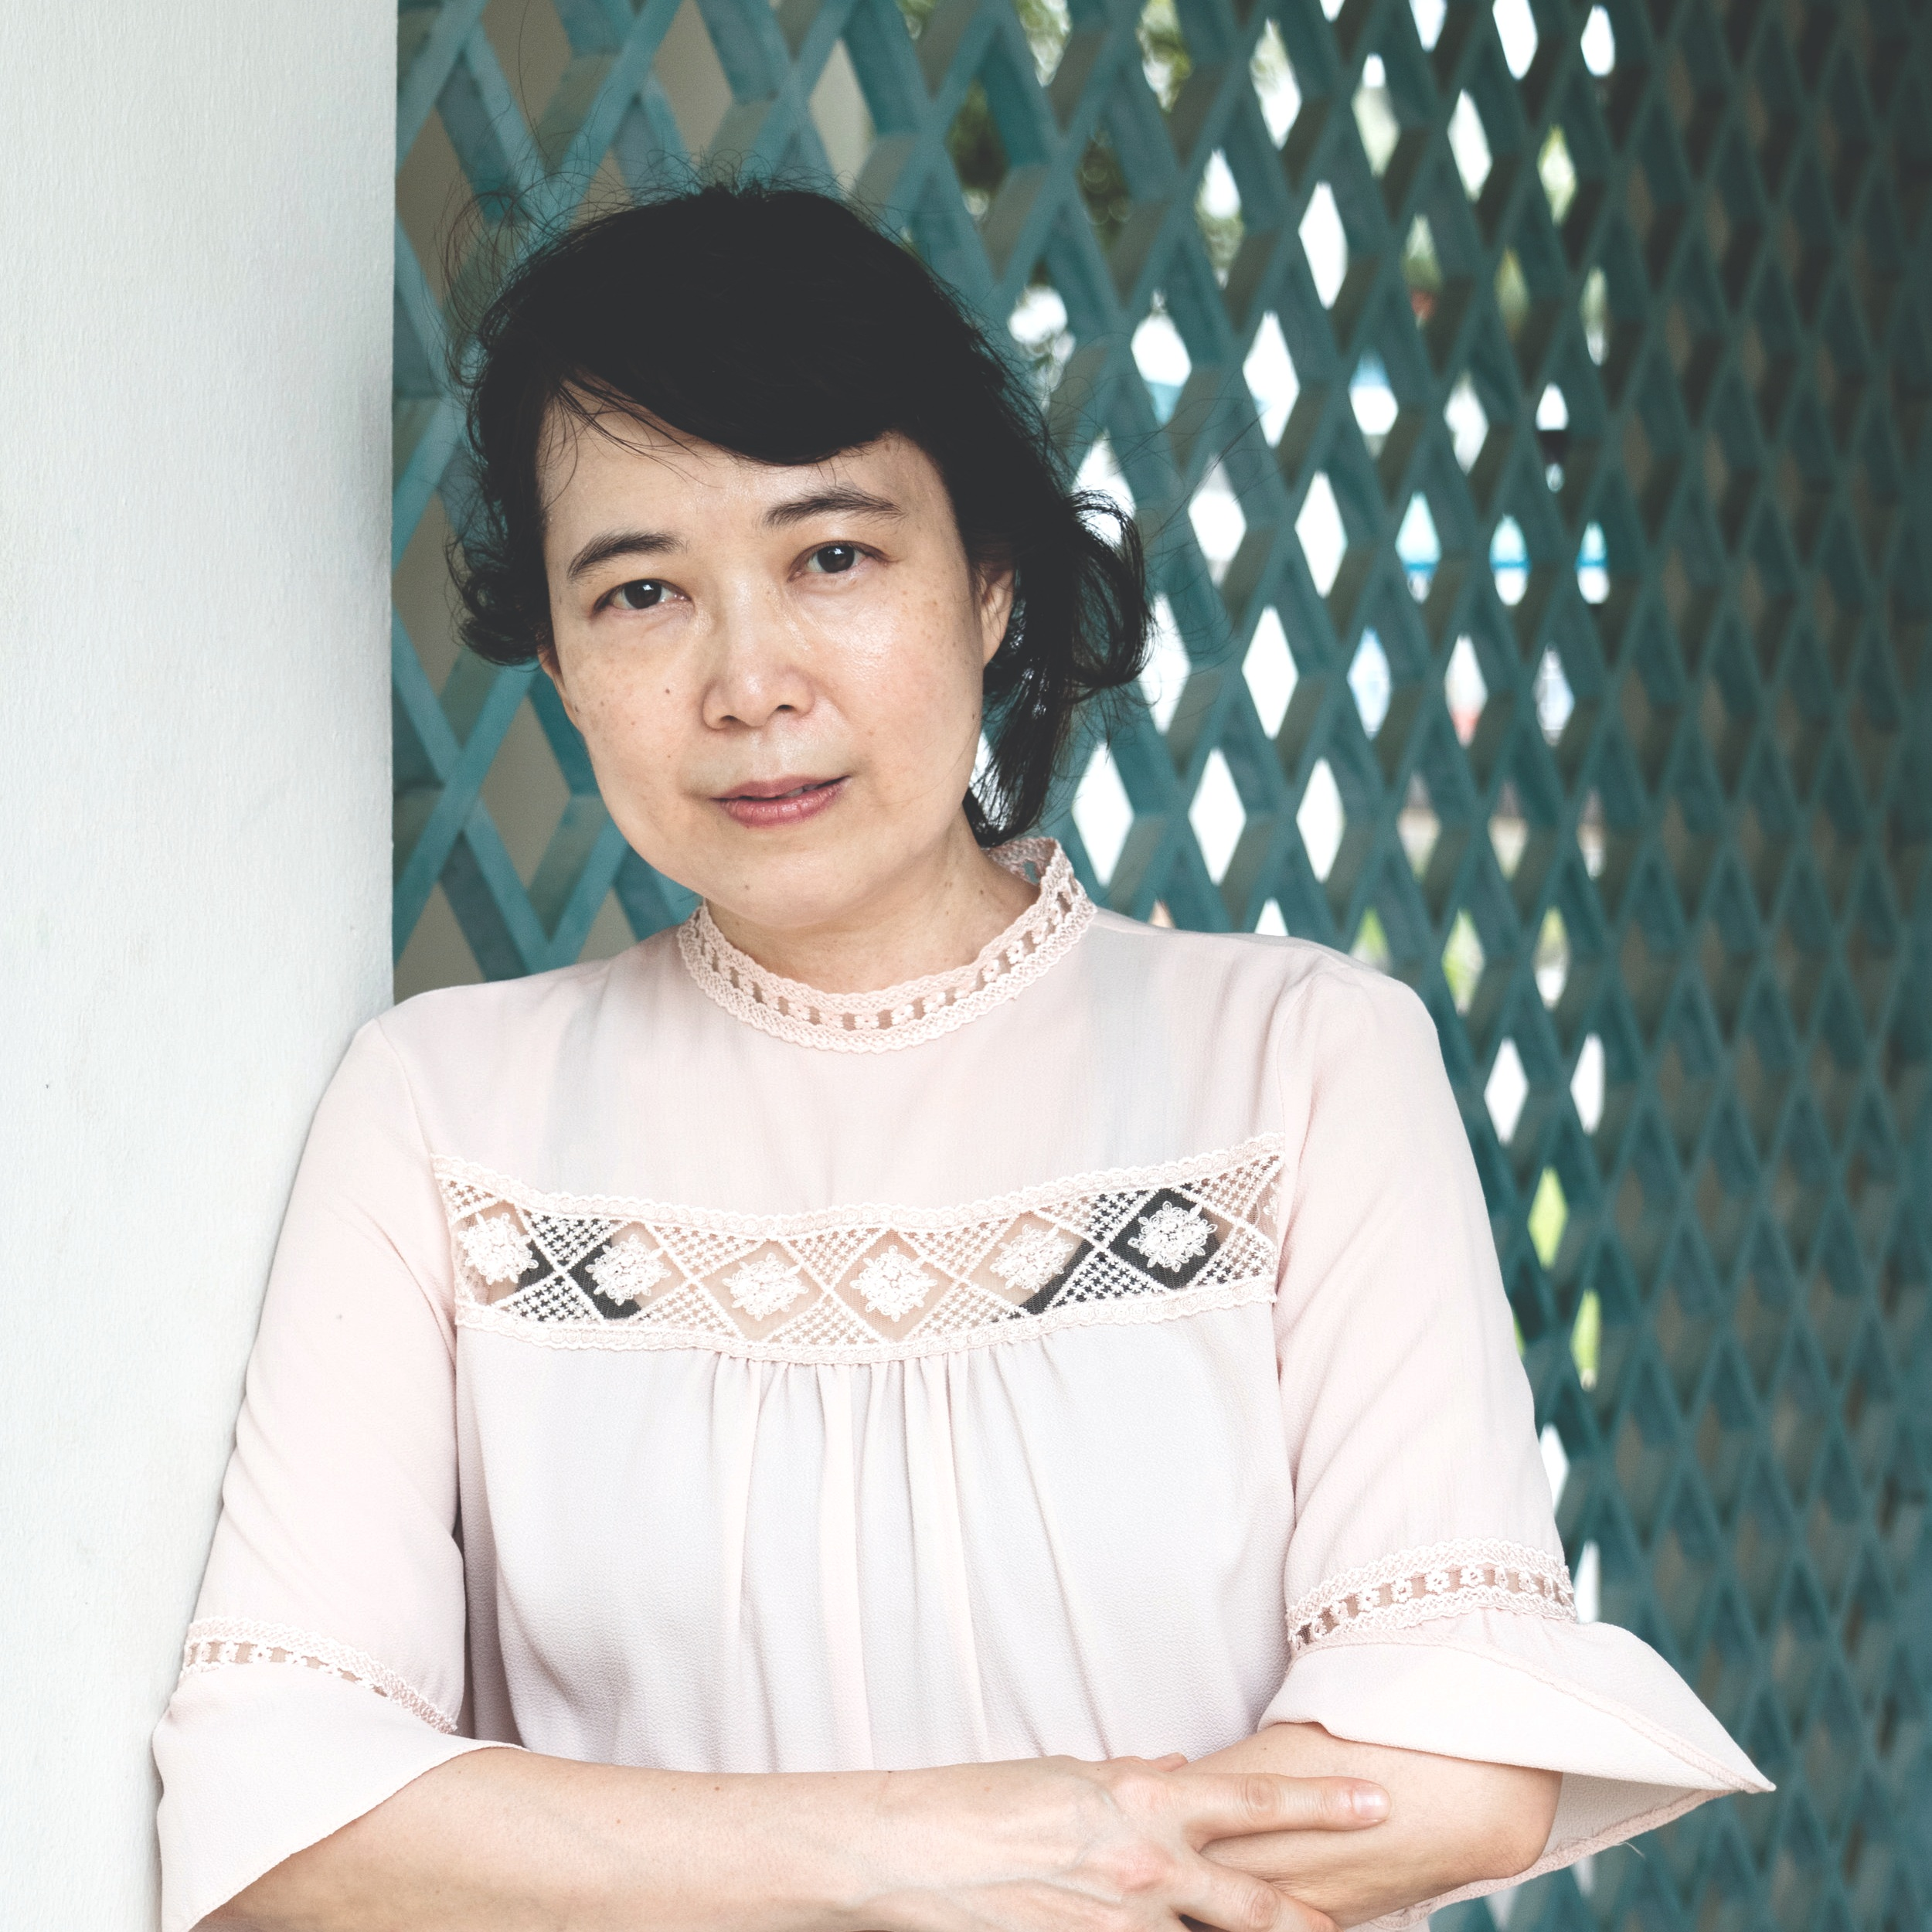 LAU SIEW MEI - The Last Immigrant is Lau Siew Mei's third novel, having received acclaim for her two previous novels, Playing Madame Mao (2002), which Time Magazine called